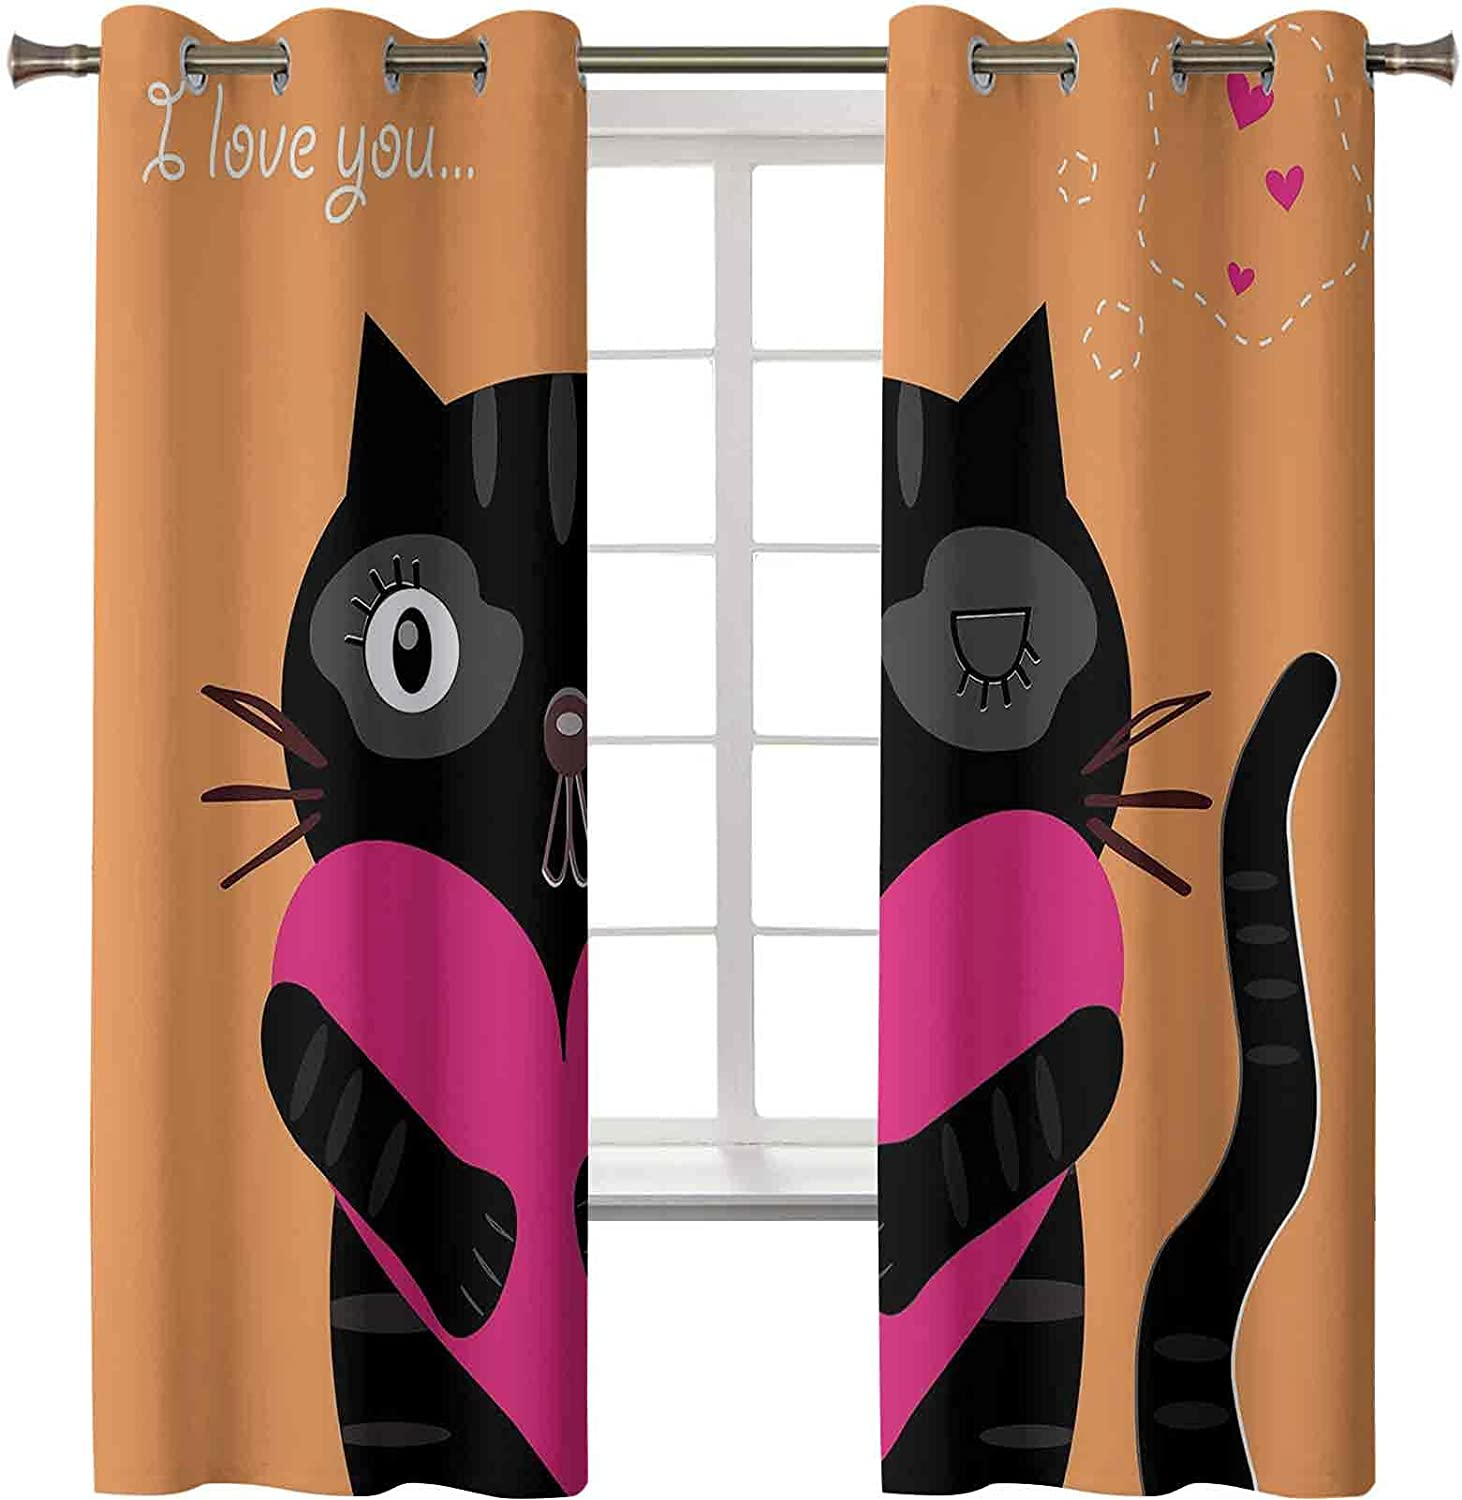 Thermal Insulating Blackout Curtain Kitty Lov I Heart Holding Purchase A Colorado Springs Mall